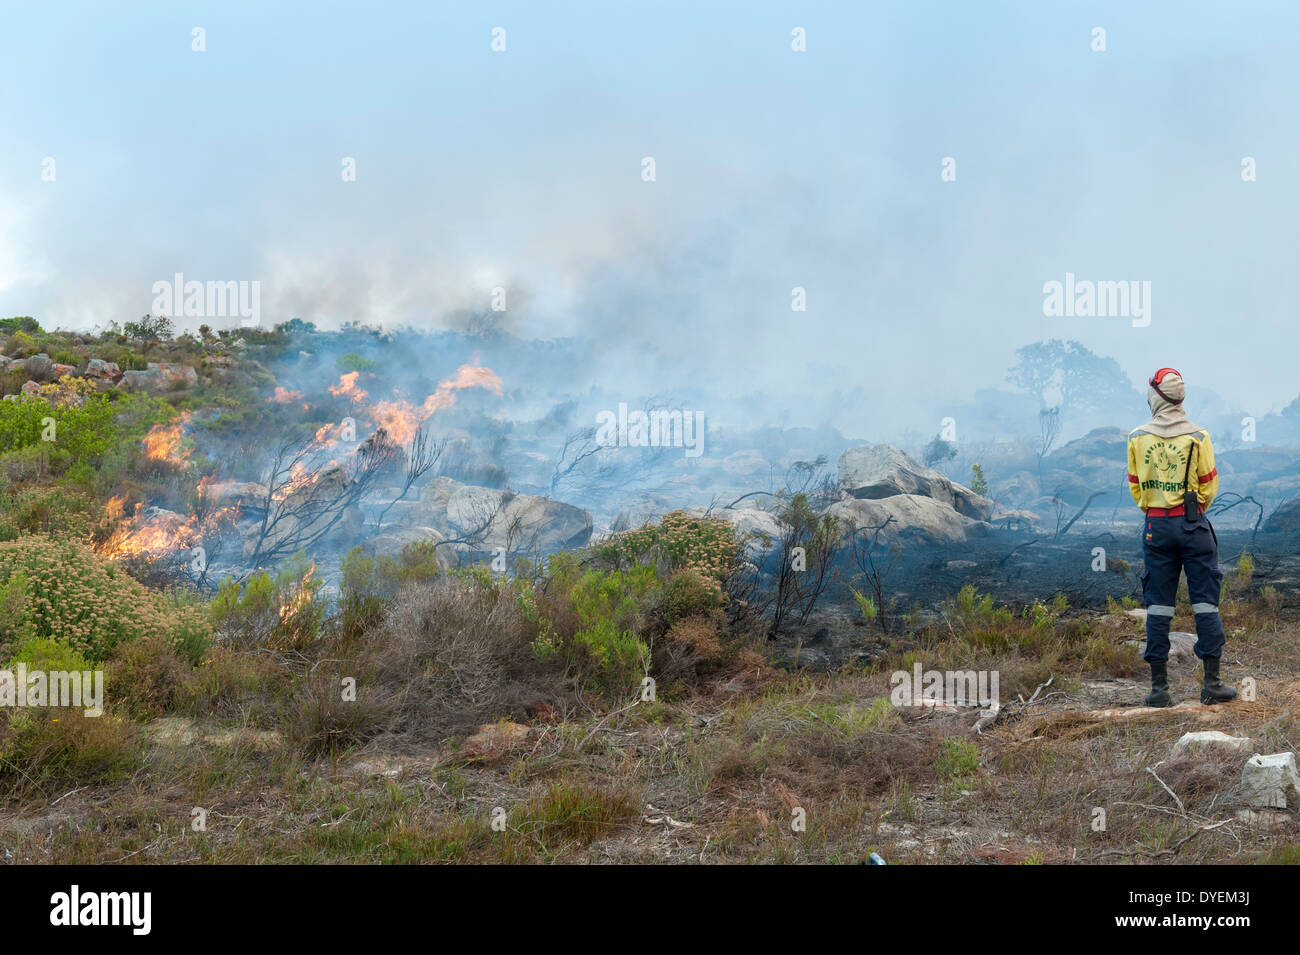 Firefighter exercises controlled burning of vegetation to stimulate new growth, Cape Peninsula, Western Cape, South - Stock Image